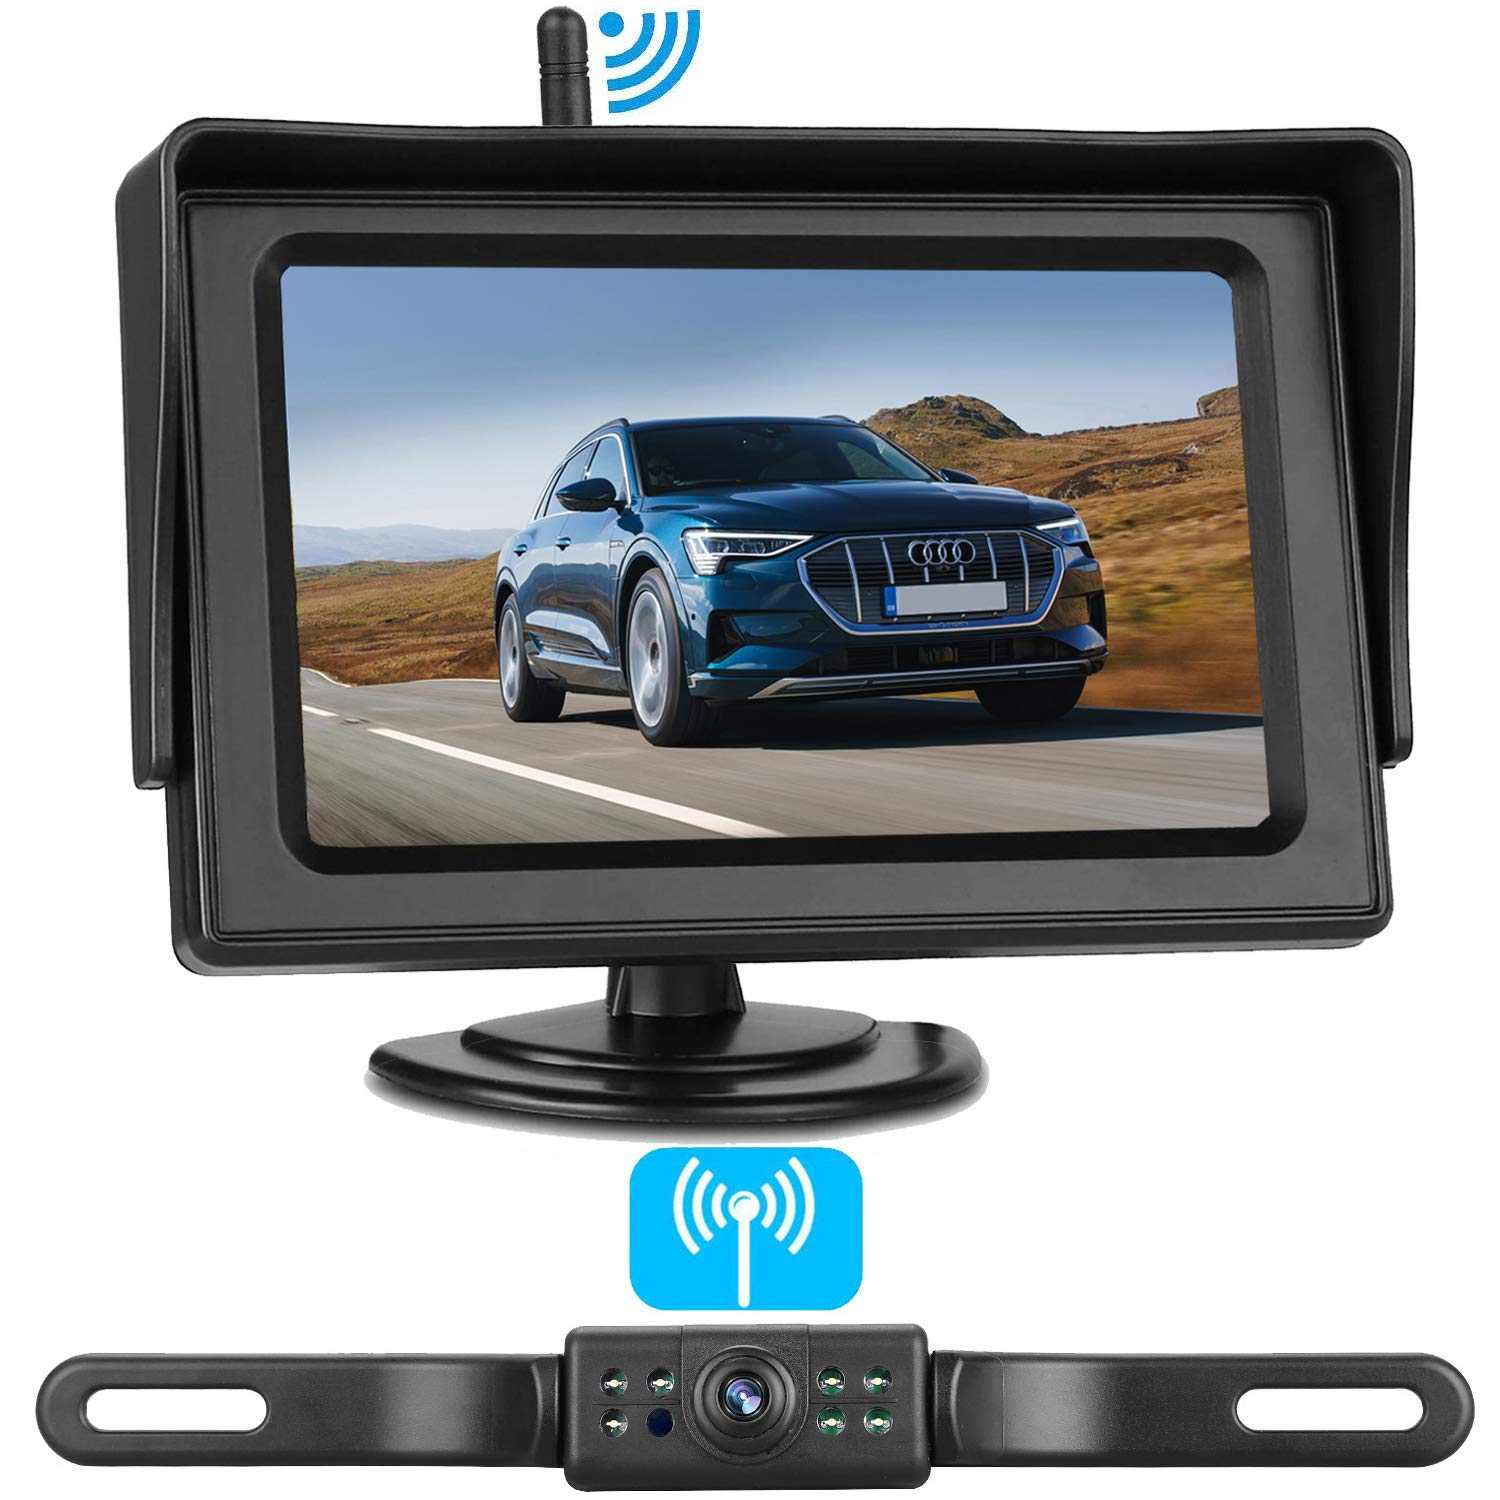 Emmako Backup Camera Wireless and 4.3'' Monitor System For Cars/SUVs/Mini Vans HD Color Night Vision IP68 Waterproof Rear/Front View Camera Guide Lines On/Off Reversing Use by Emmako